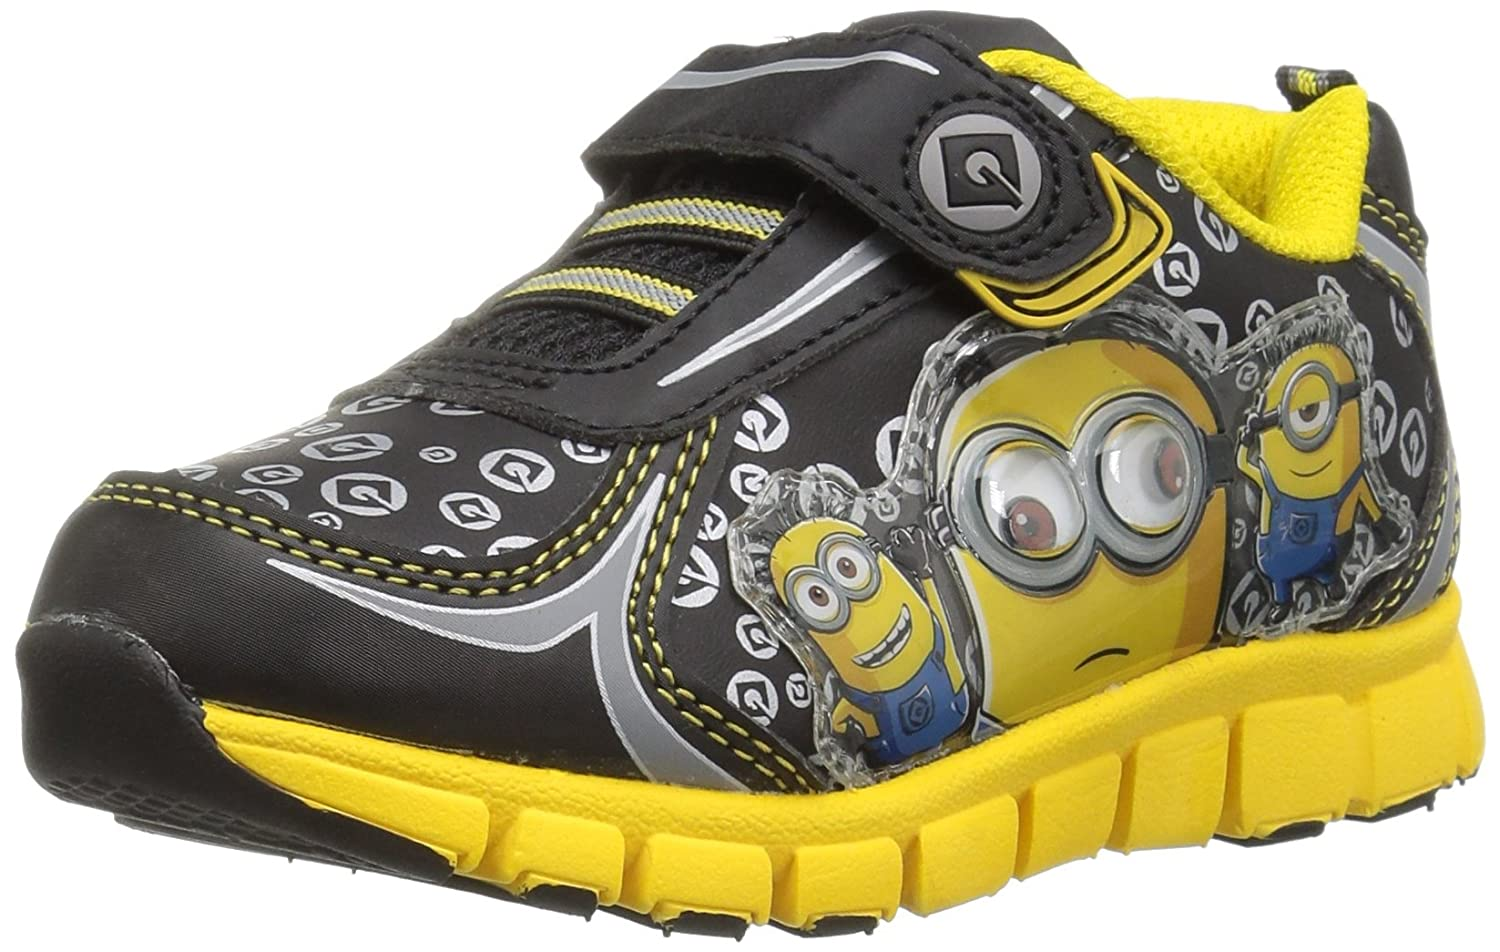 [Despicable Me] ユニセックス?キッズ BLK-YLW ATH SHOE